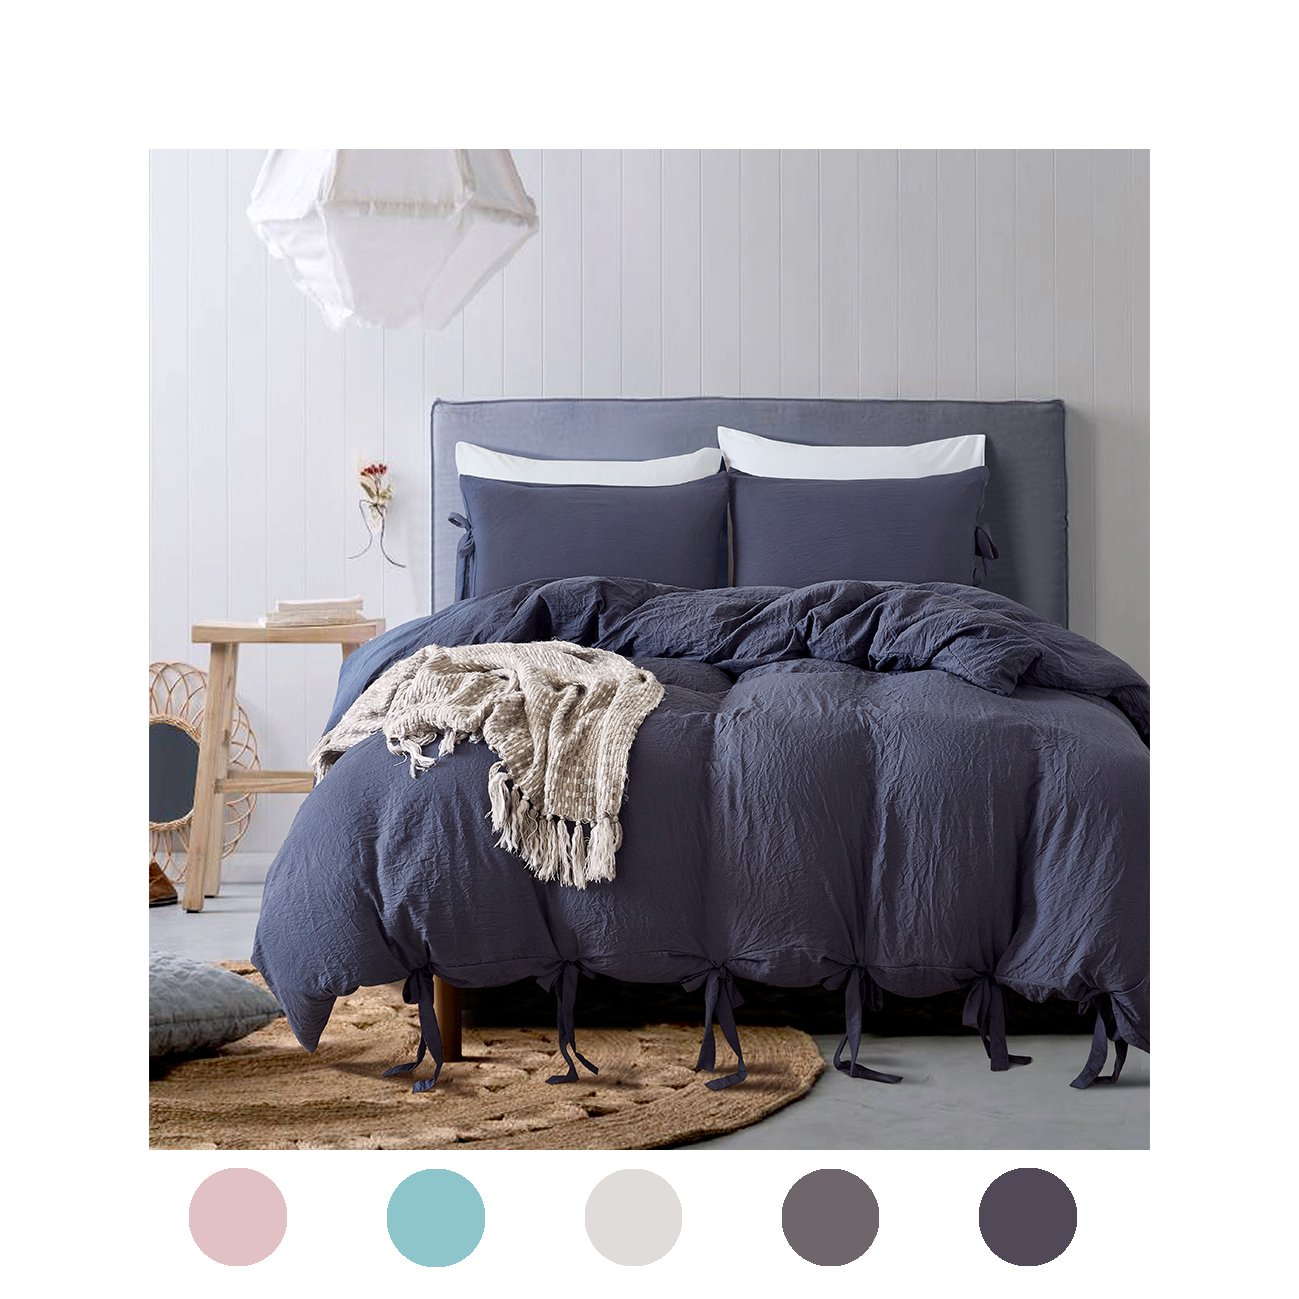 Moreover 3 Pieces Navy Blue Bedding Navy Blue Duvet Cover Set Bowknot Design Soft Navy Bedding Sets Queen One Bowknot Duvet Cover Two Bow Tie Pillowcases (Queen, Navy Blue)